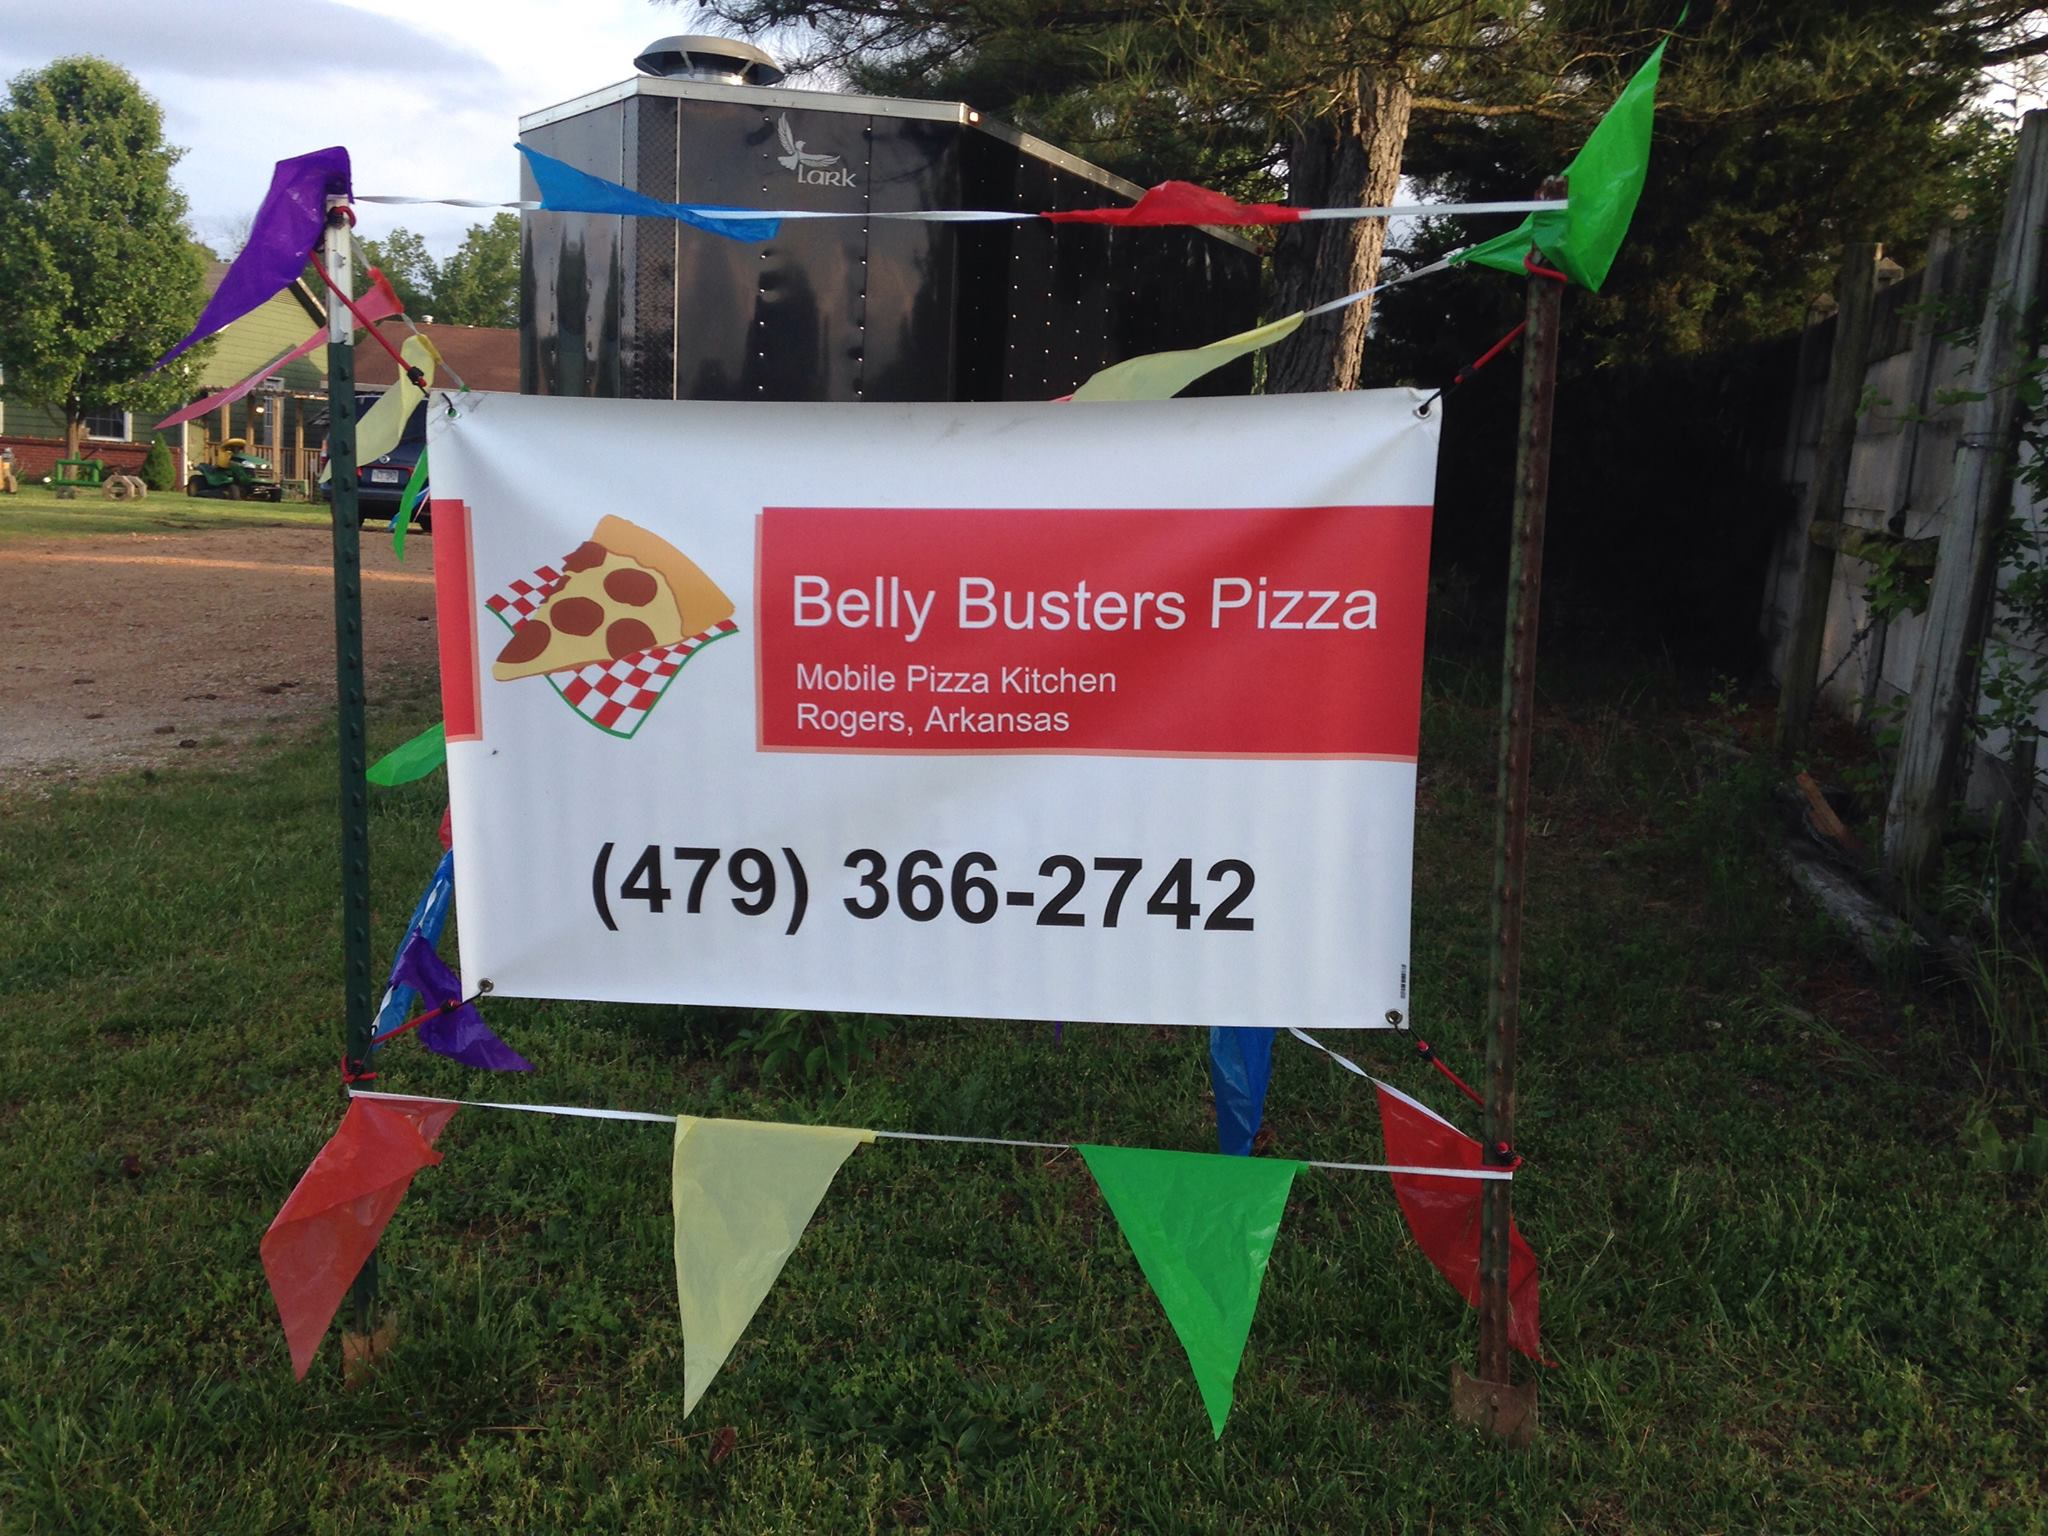 Belly Busters Pizza